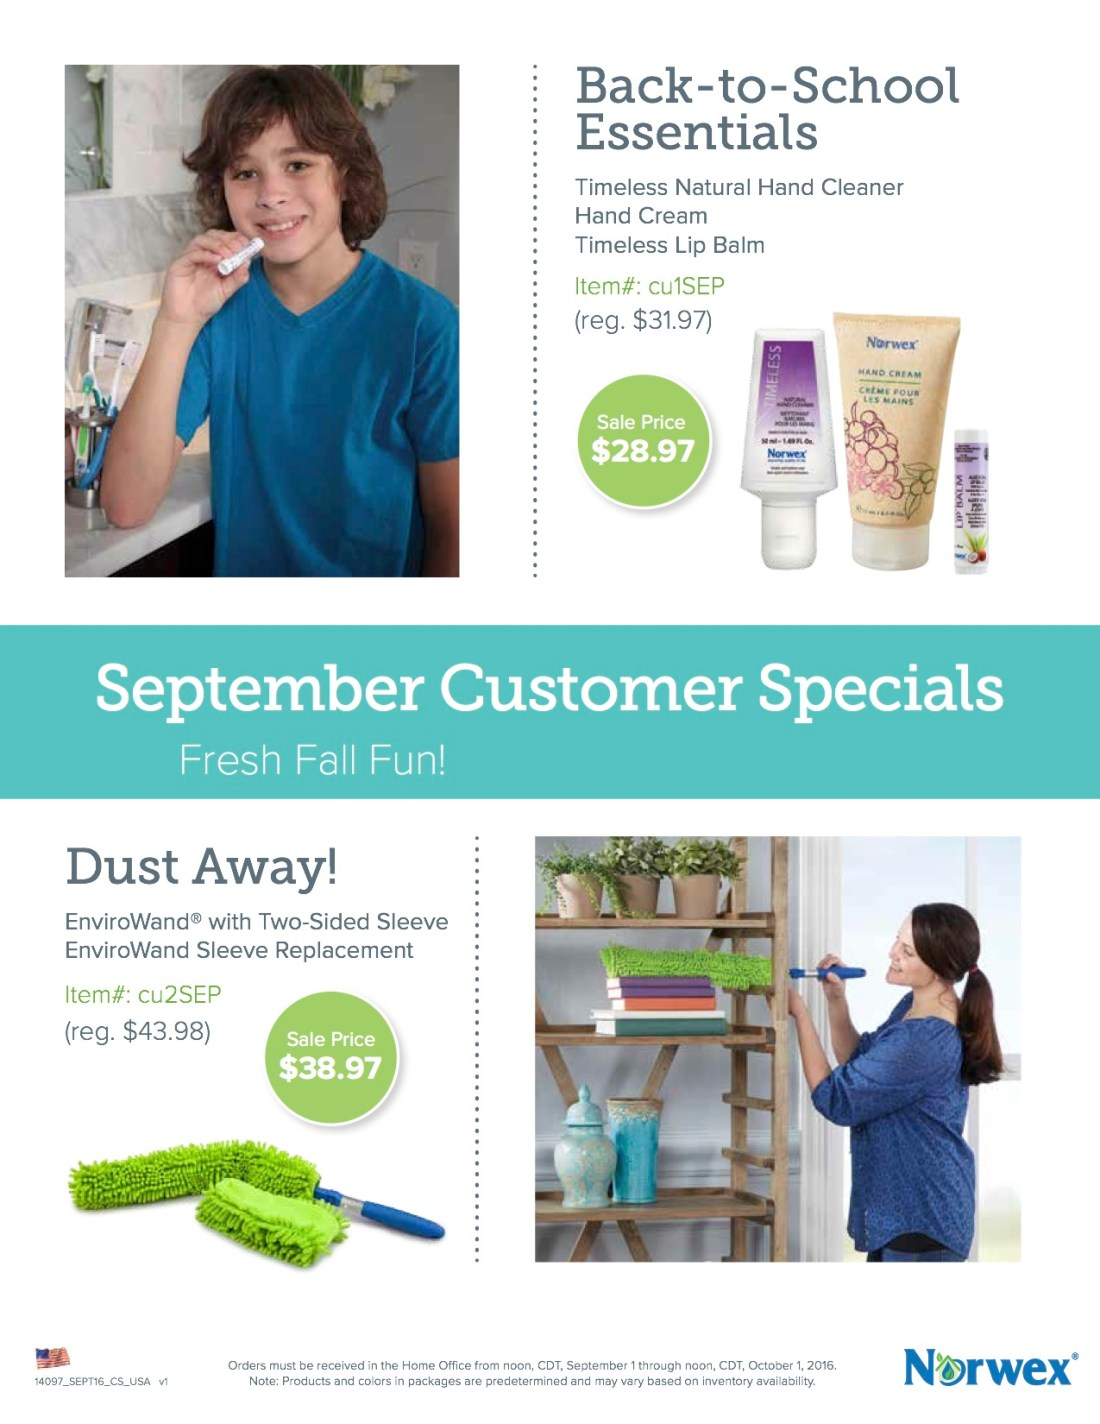 September Customer Specials